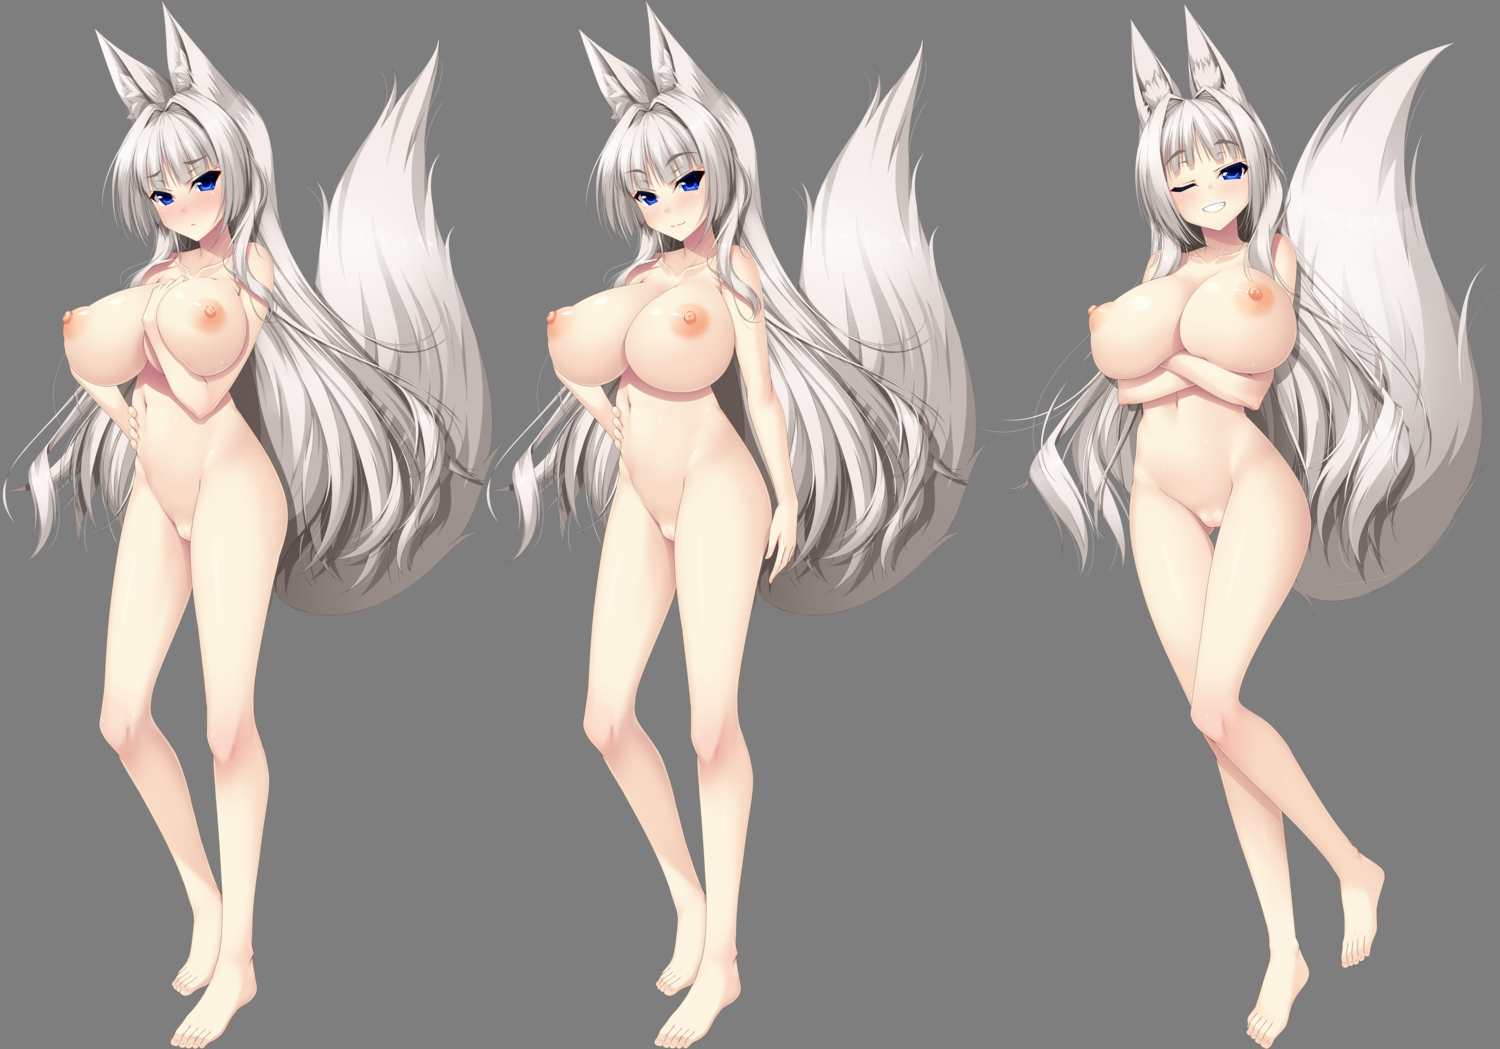 animal_ears barefoot blue_eyes blush breast_hold breasts foxgirl gray_hair long_hair navel nipples nude tagme_(artist) tagme_(character) tail transparent wink